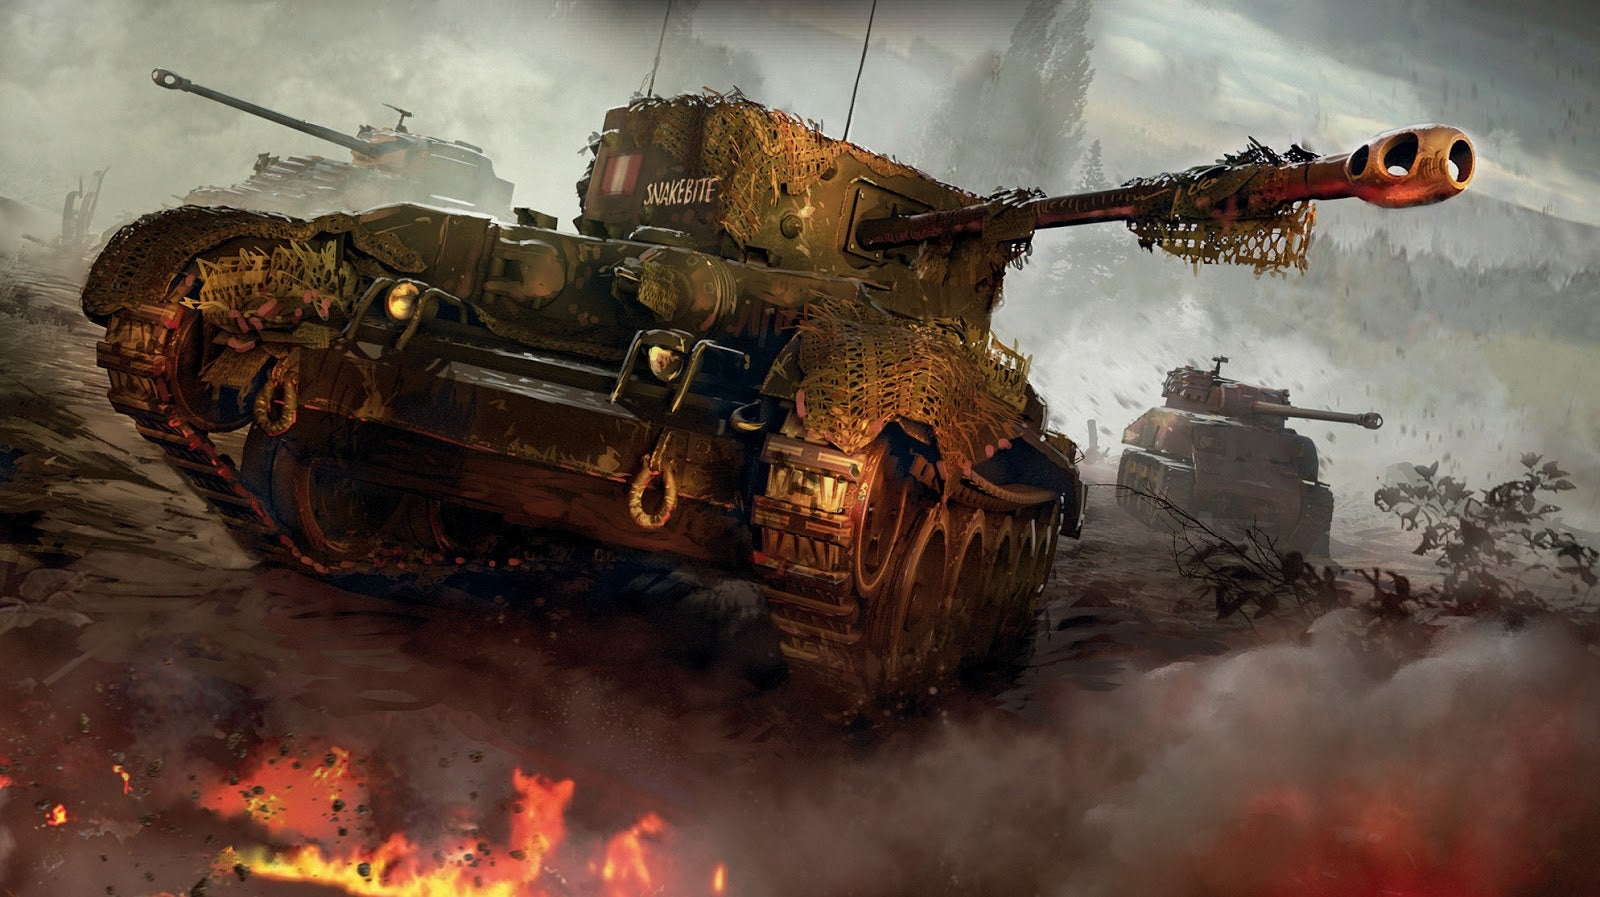 Preacher Writer Garth Ennis Will Write A New World of Tanks Comic Book